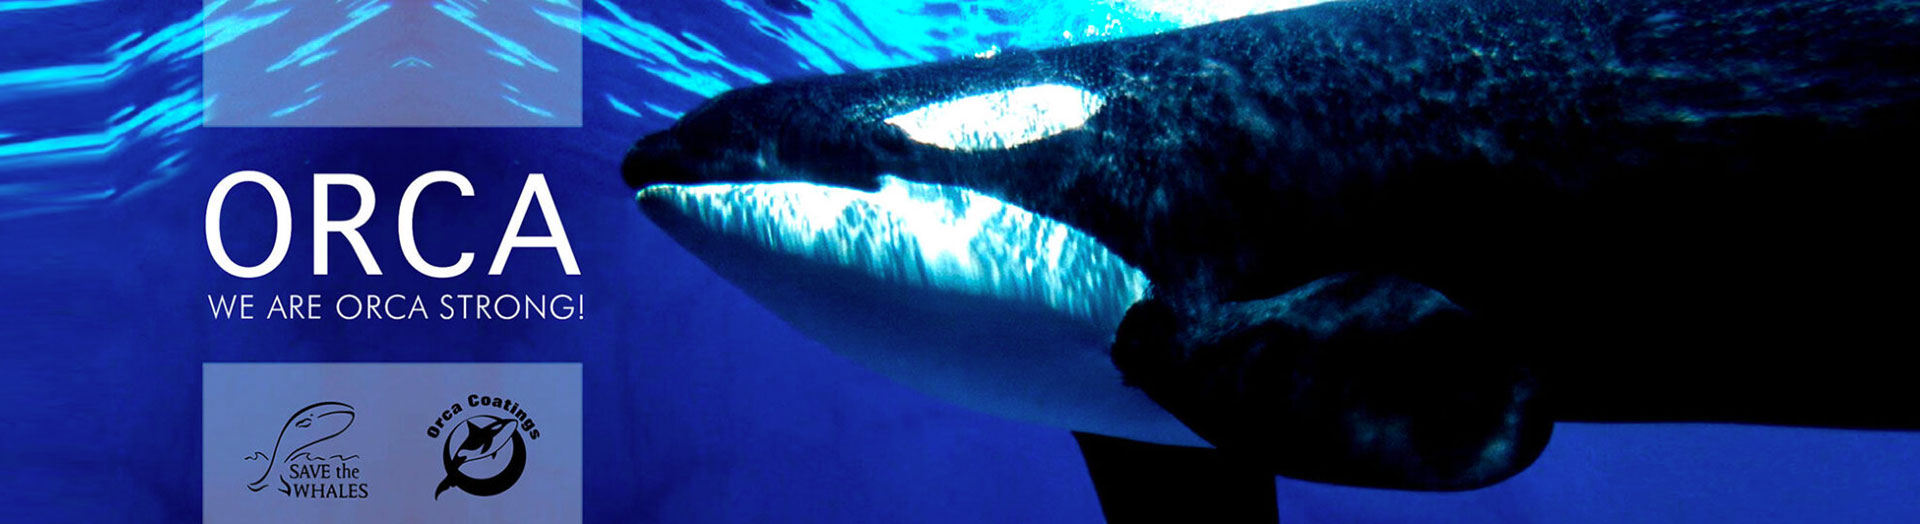 We are orca Strong!